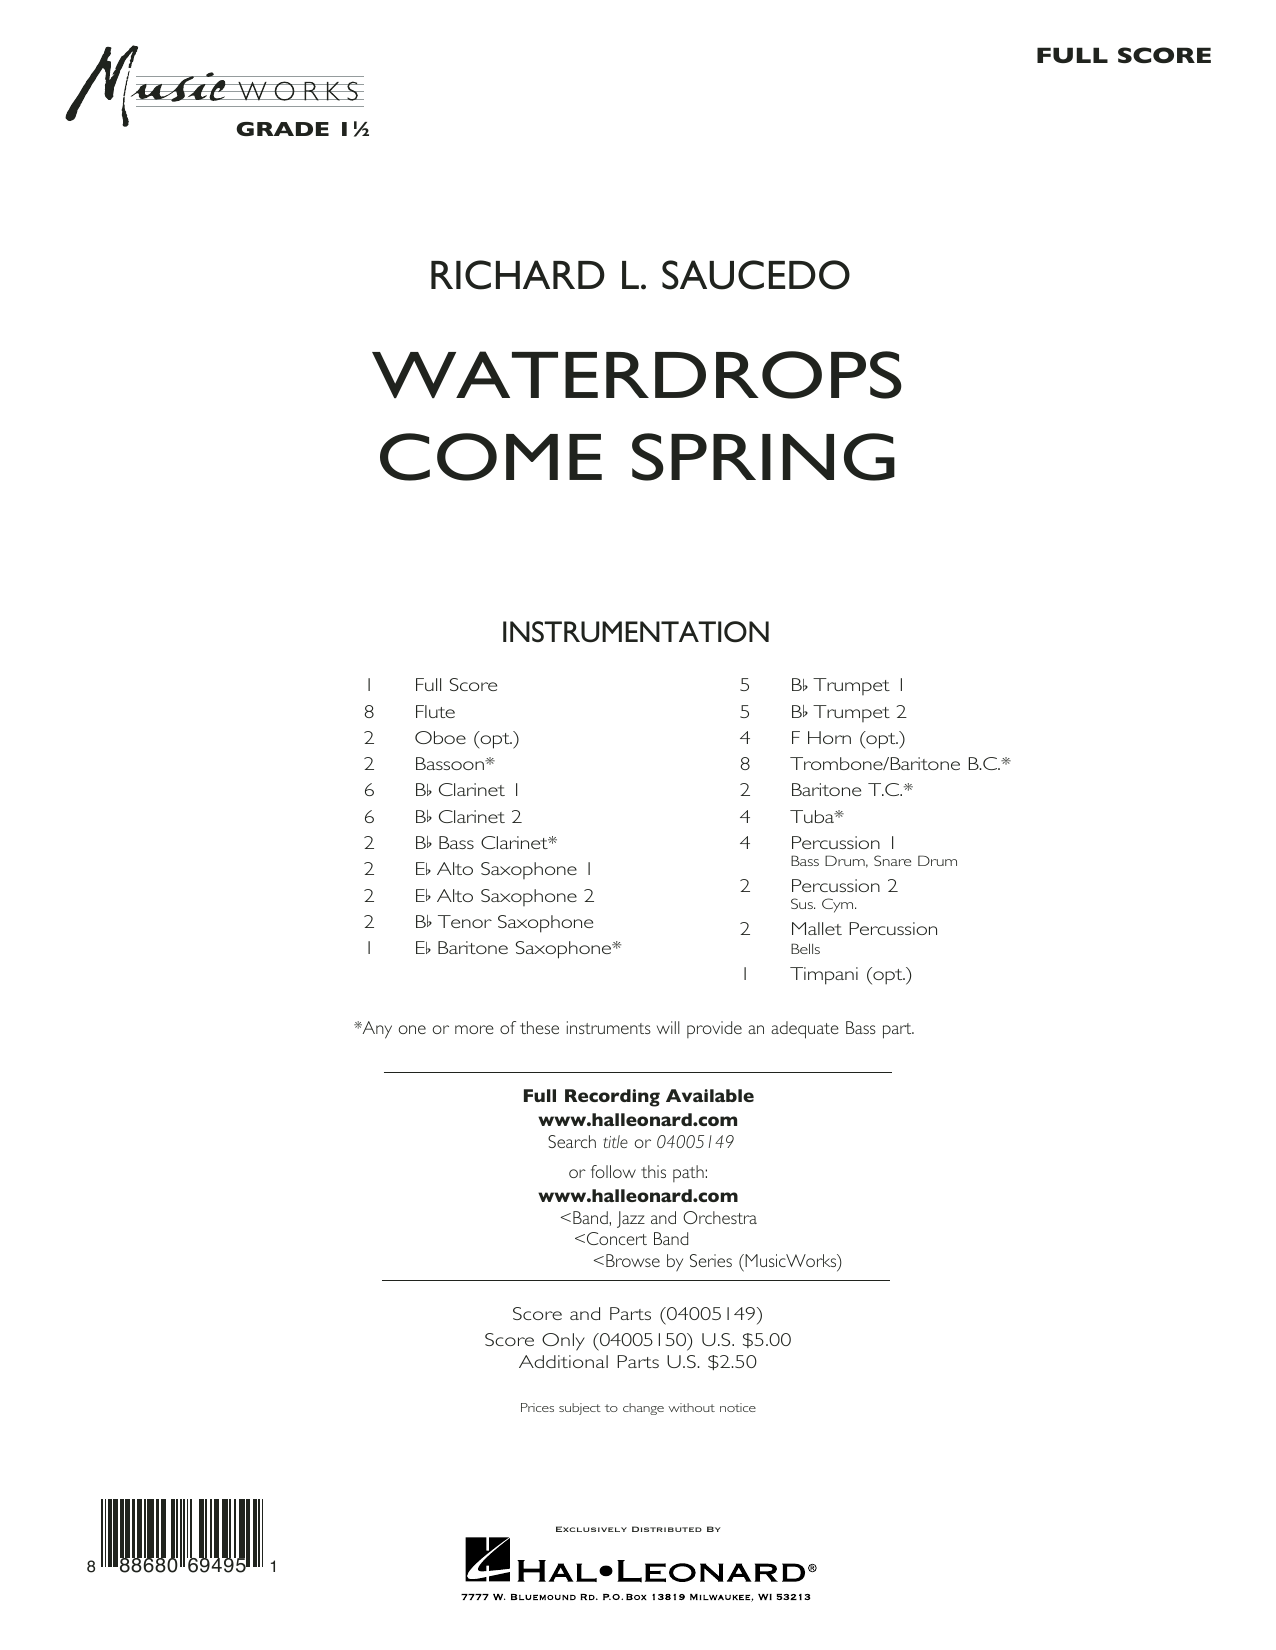 Waterdrops Come Spring - Conductor Score (Full Score) Sheet Music